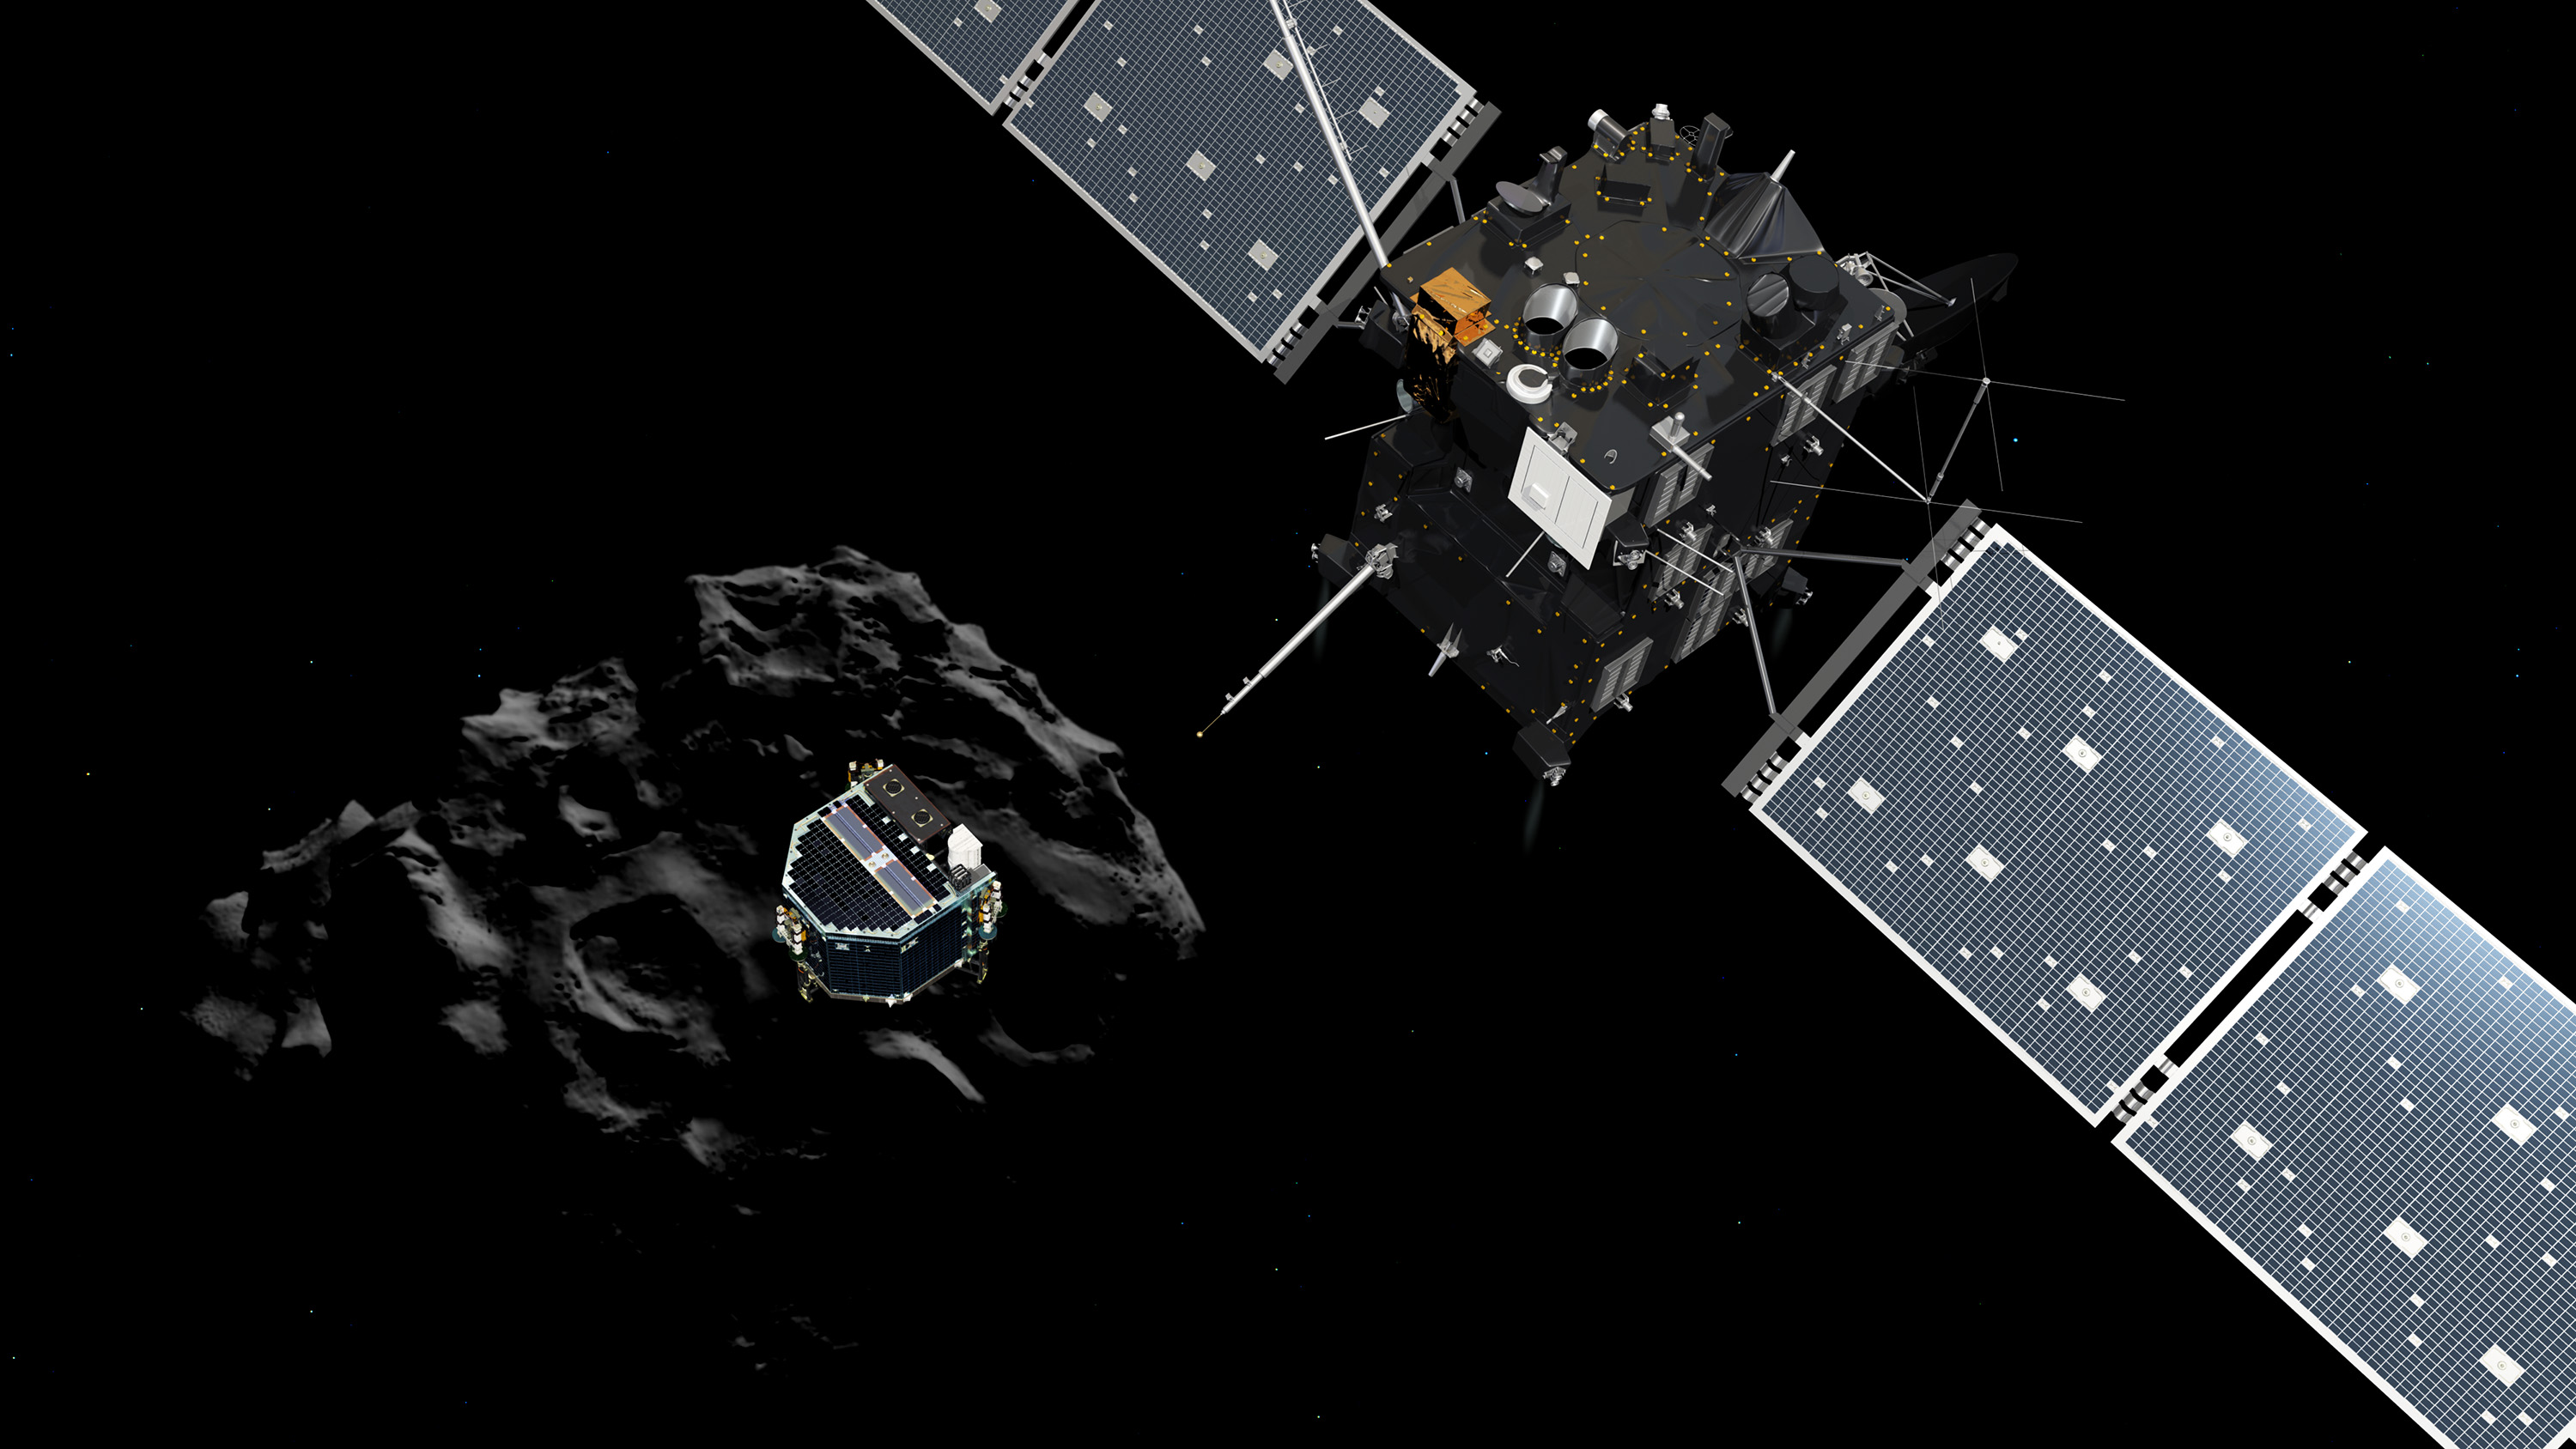 Space in Images - 2014 - 11 - Separation